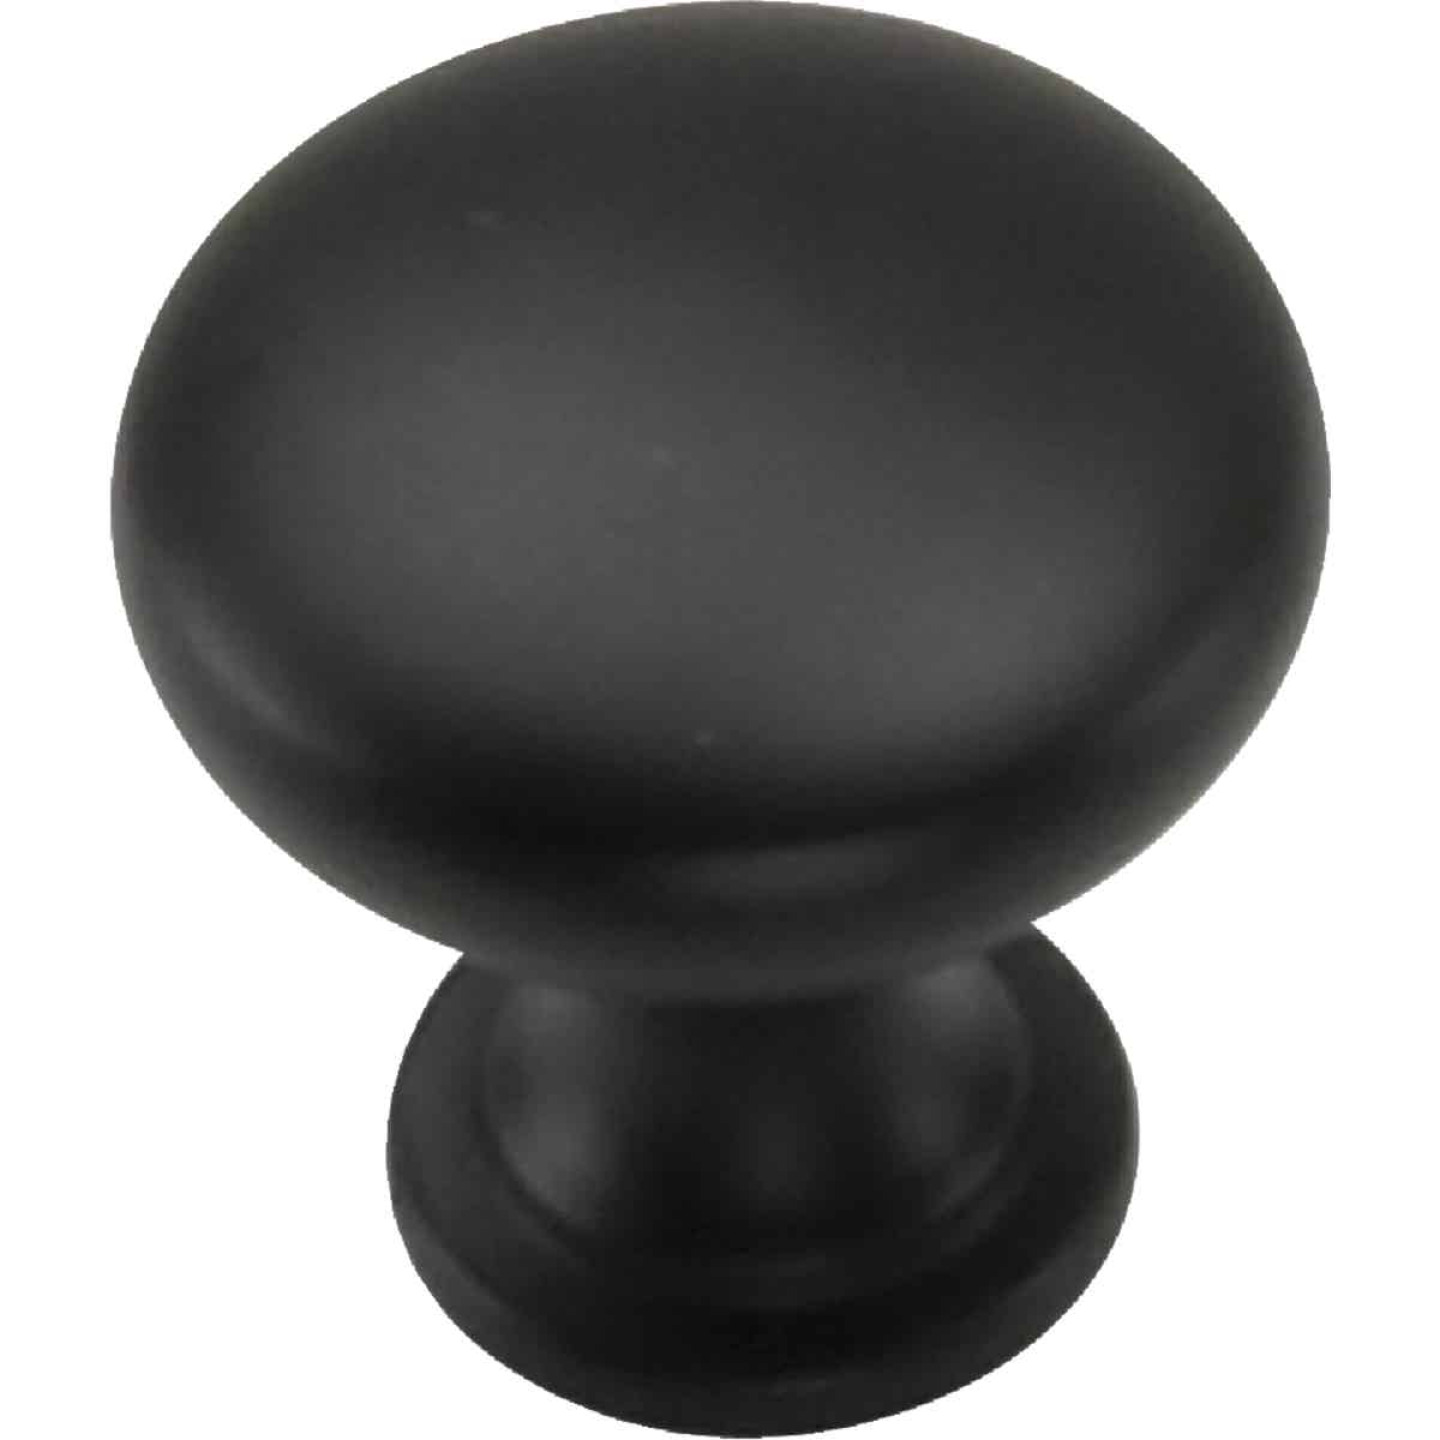 Laurey Oil Rubbed Bronze 1-1/8 In. Cabinet Knob Image 1